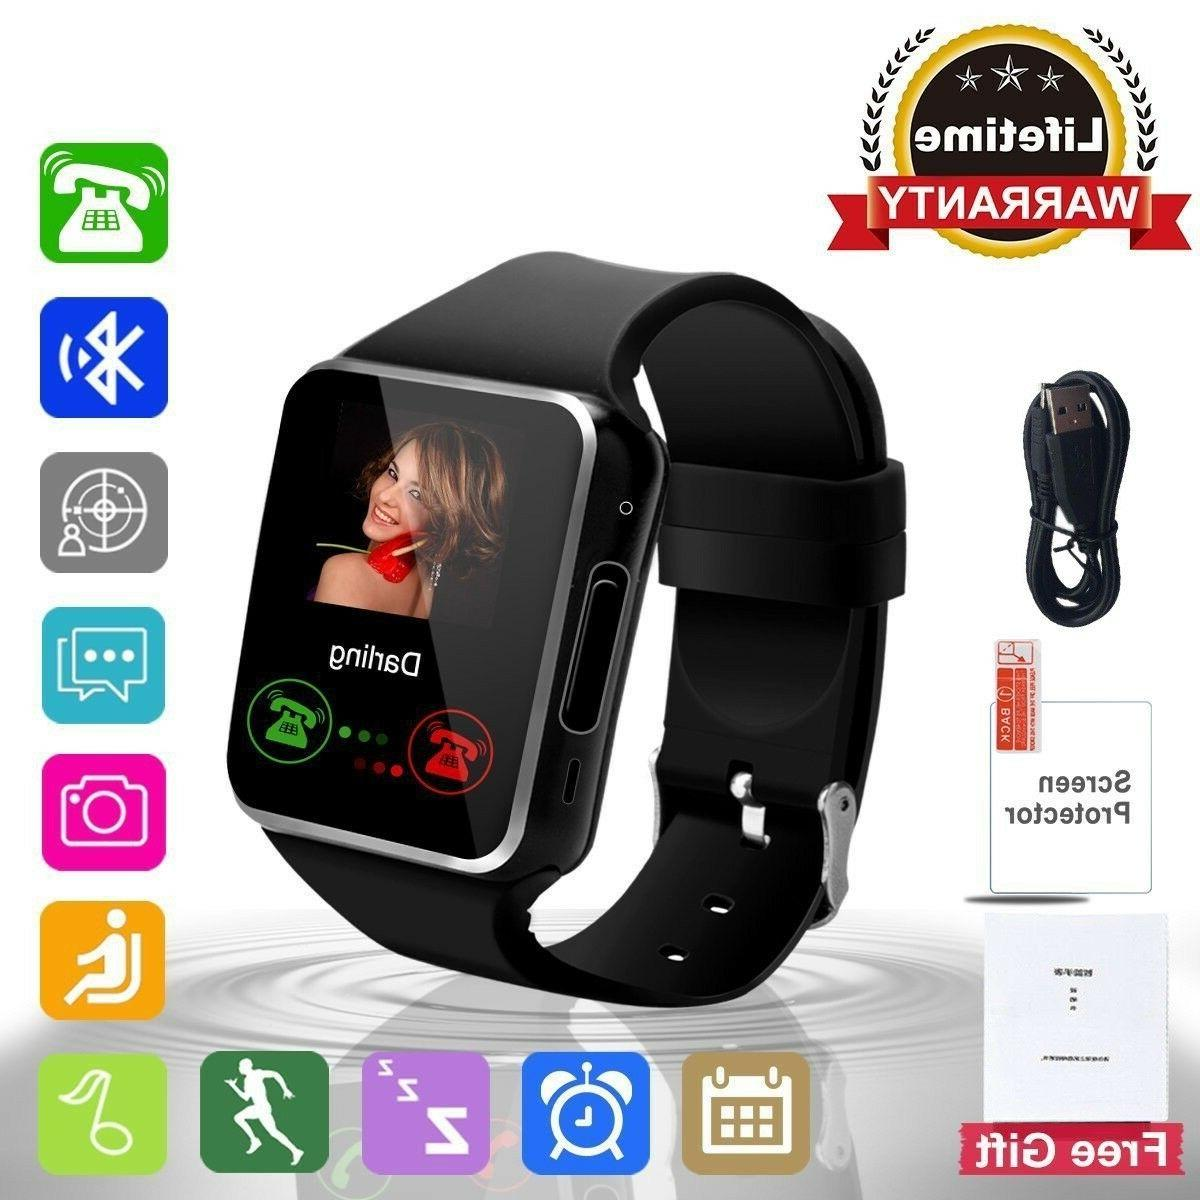 X6 Curved Screen Watch Waterproof Smart Watch Wirst watch St